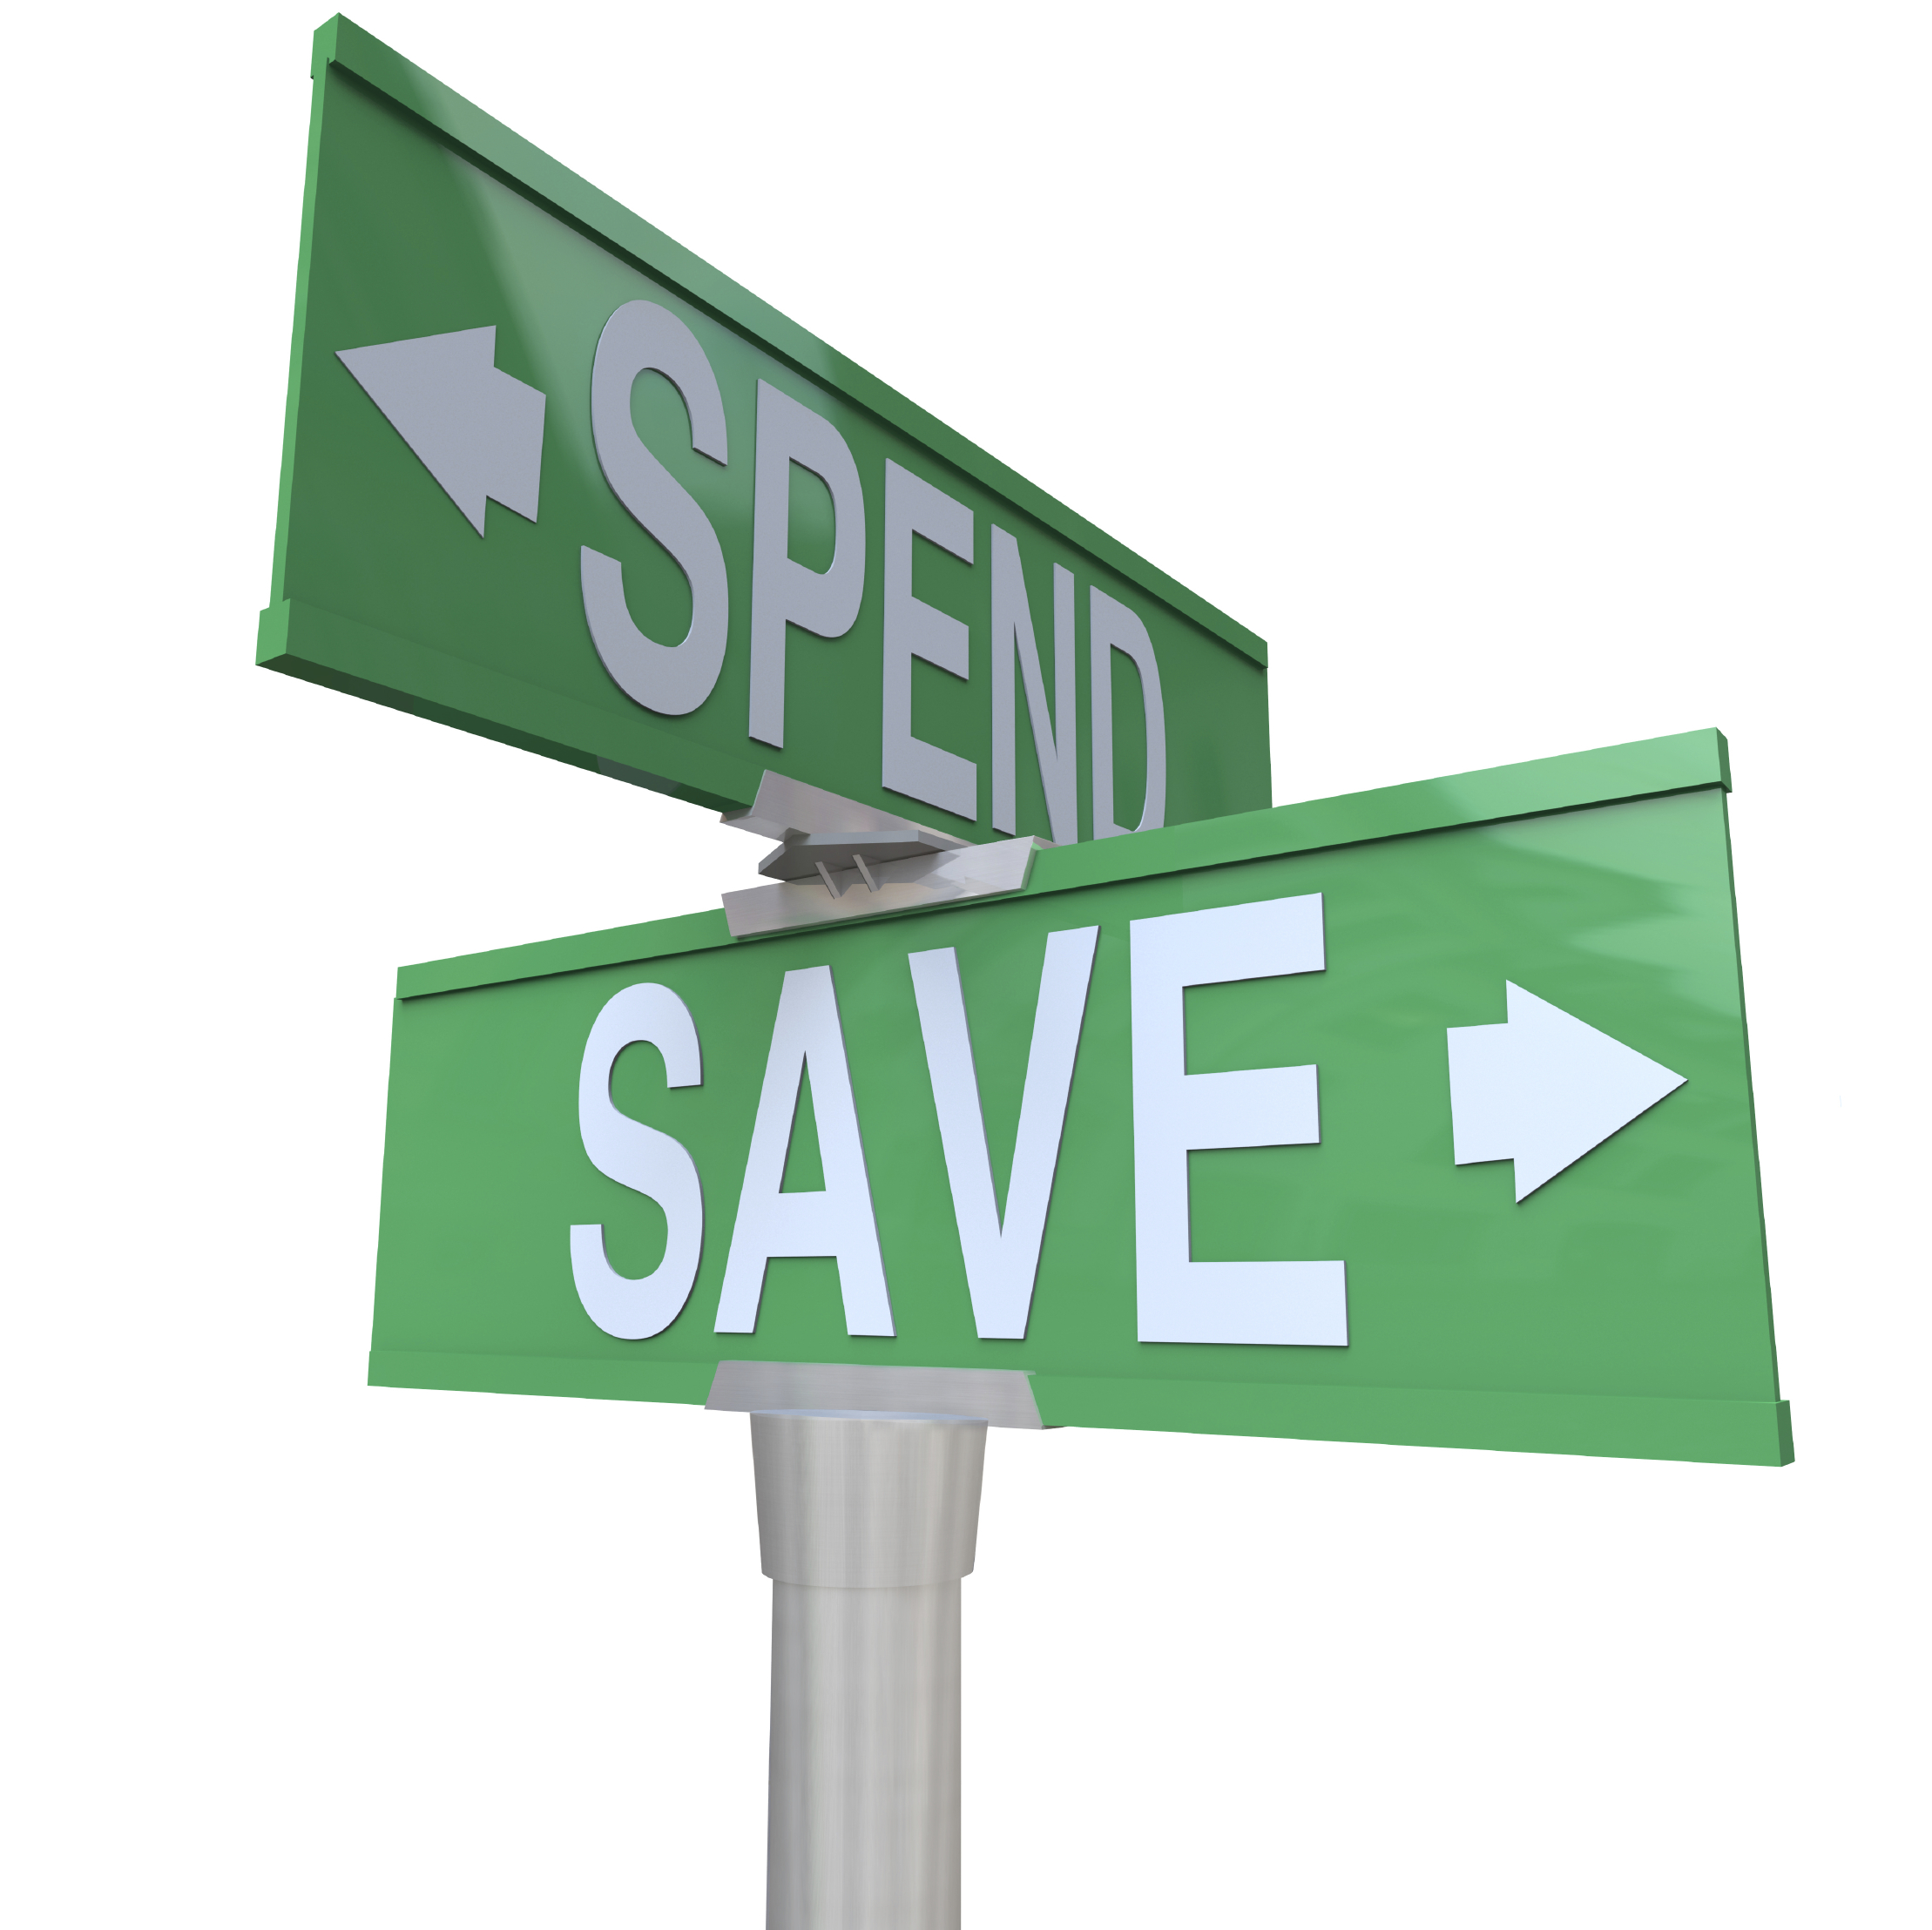 Image result for SPEND